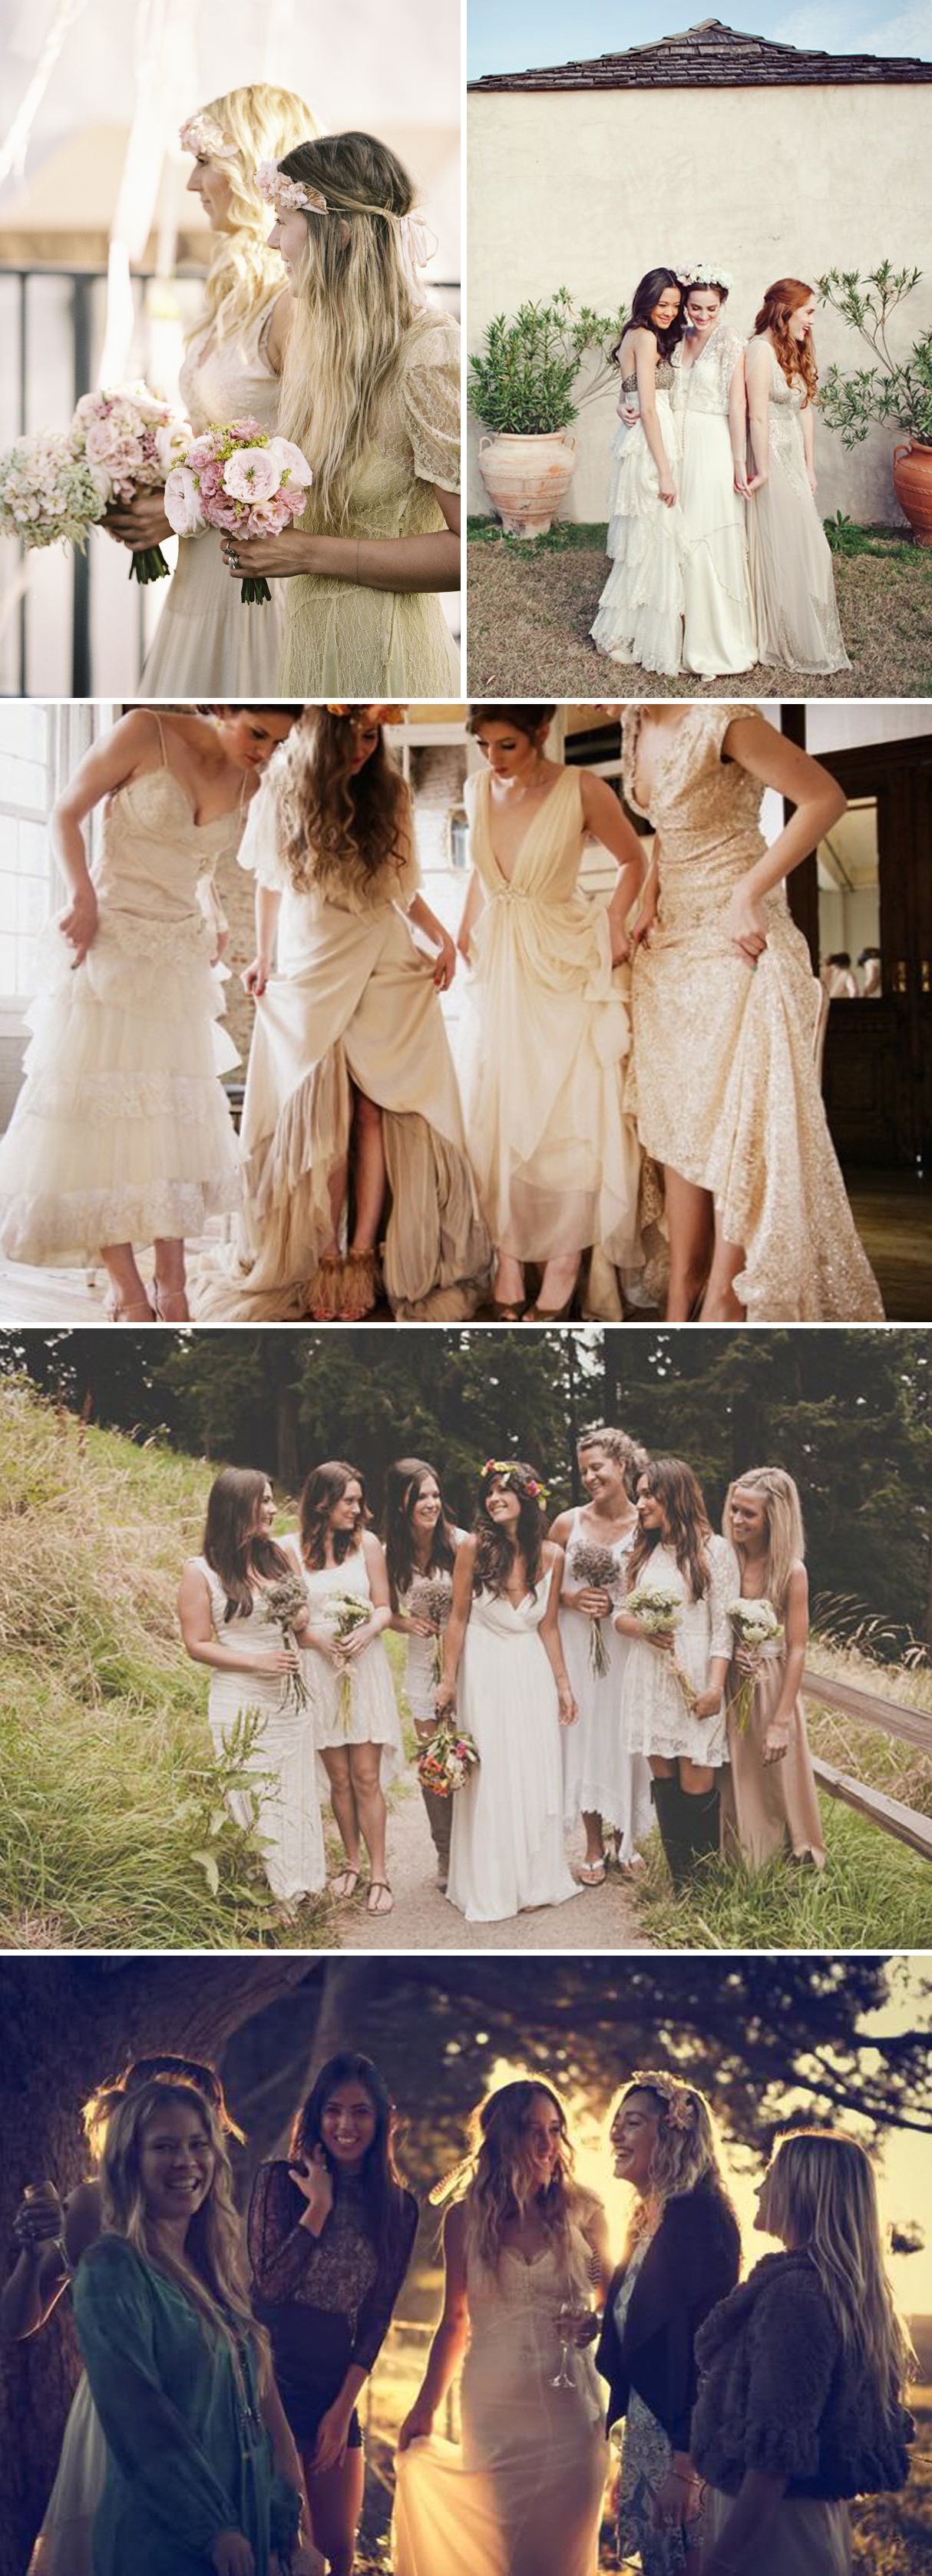 Coco Wedding Venues, Bohemian Beats Style Category, Maid Fashion.